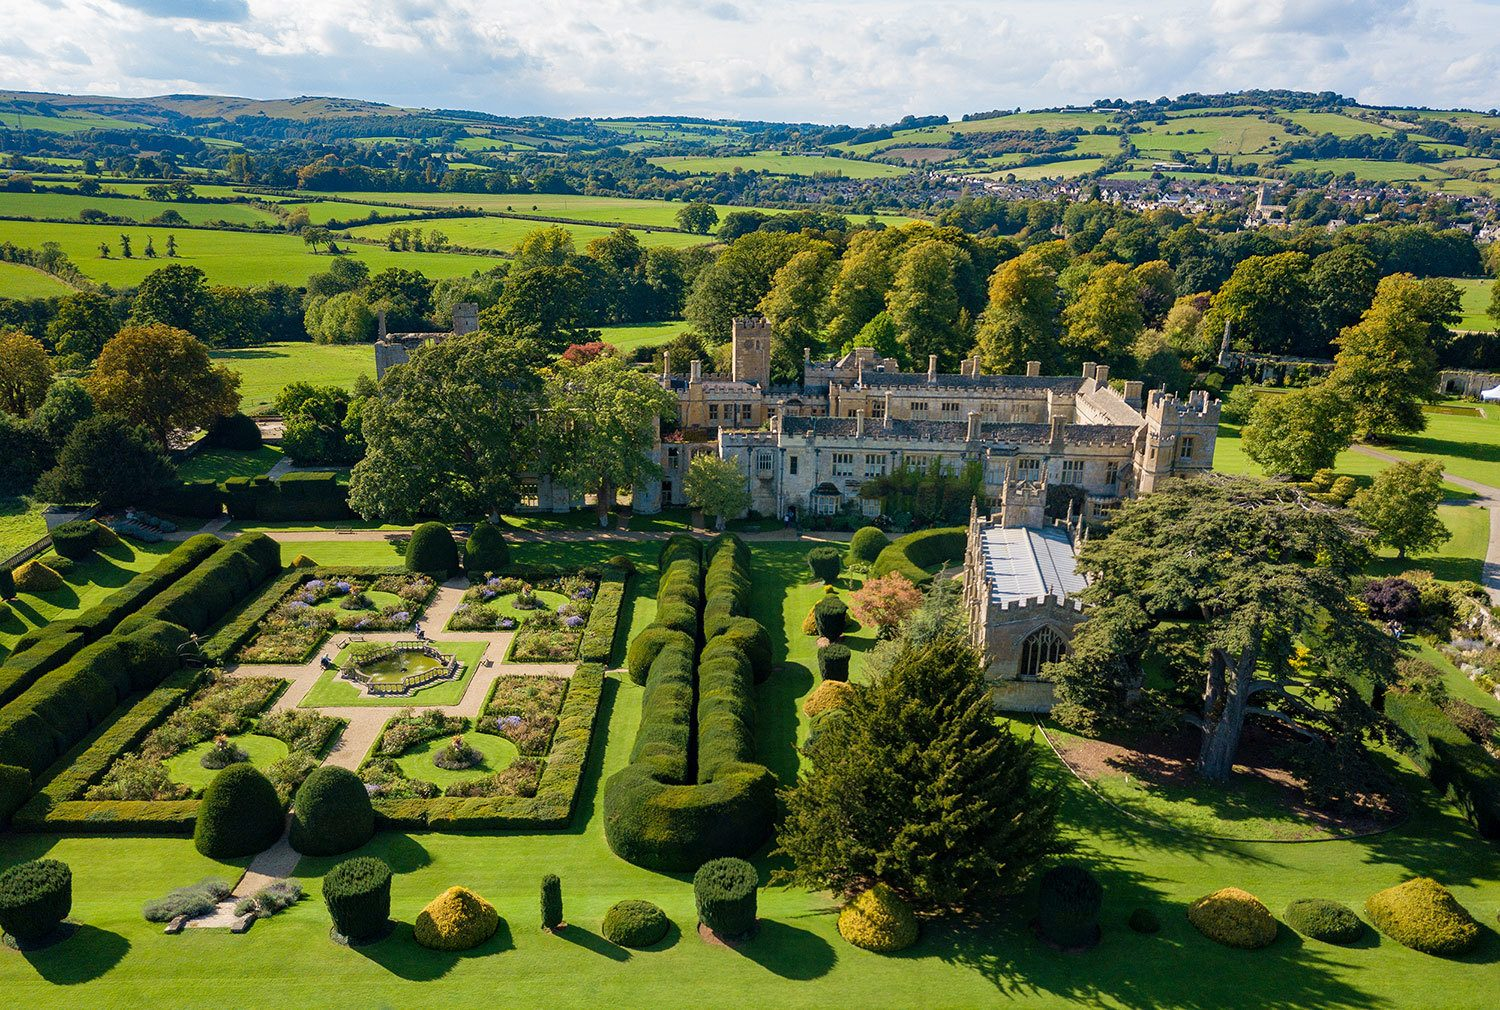 Aerial shot of Sudeley Castle from Queens Garden